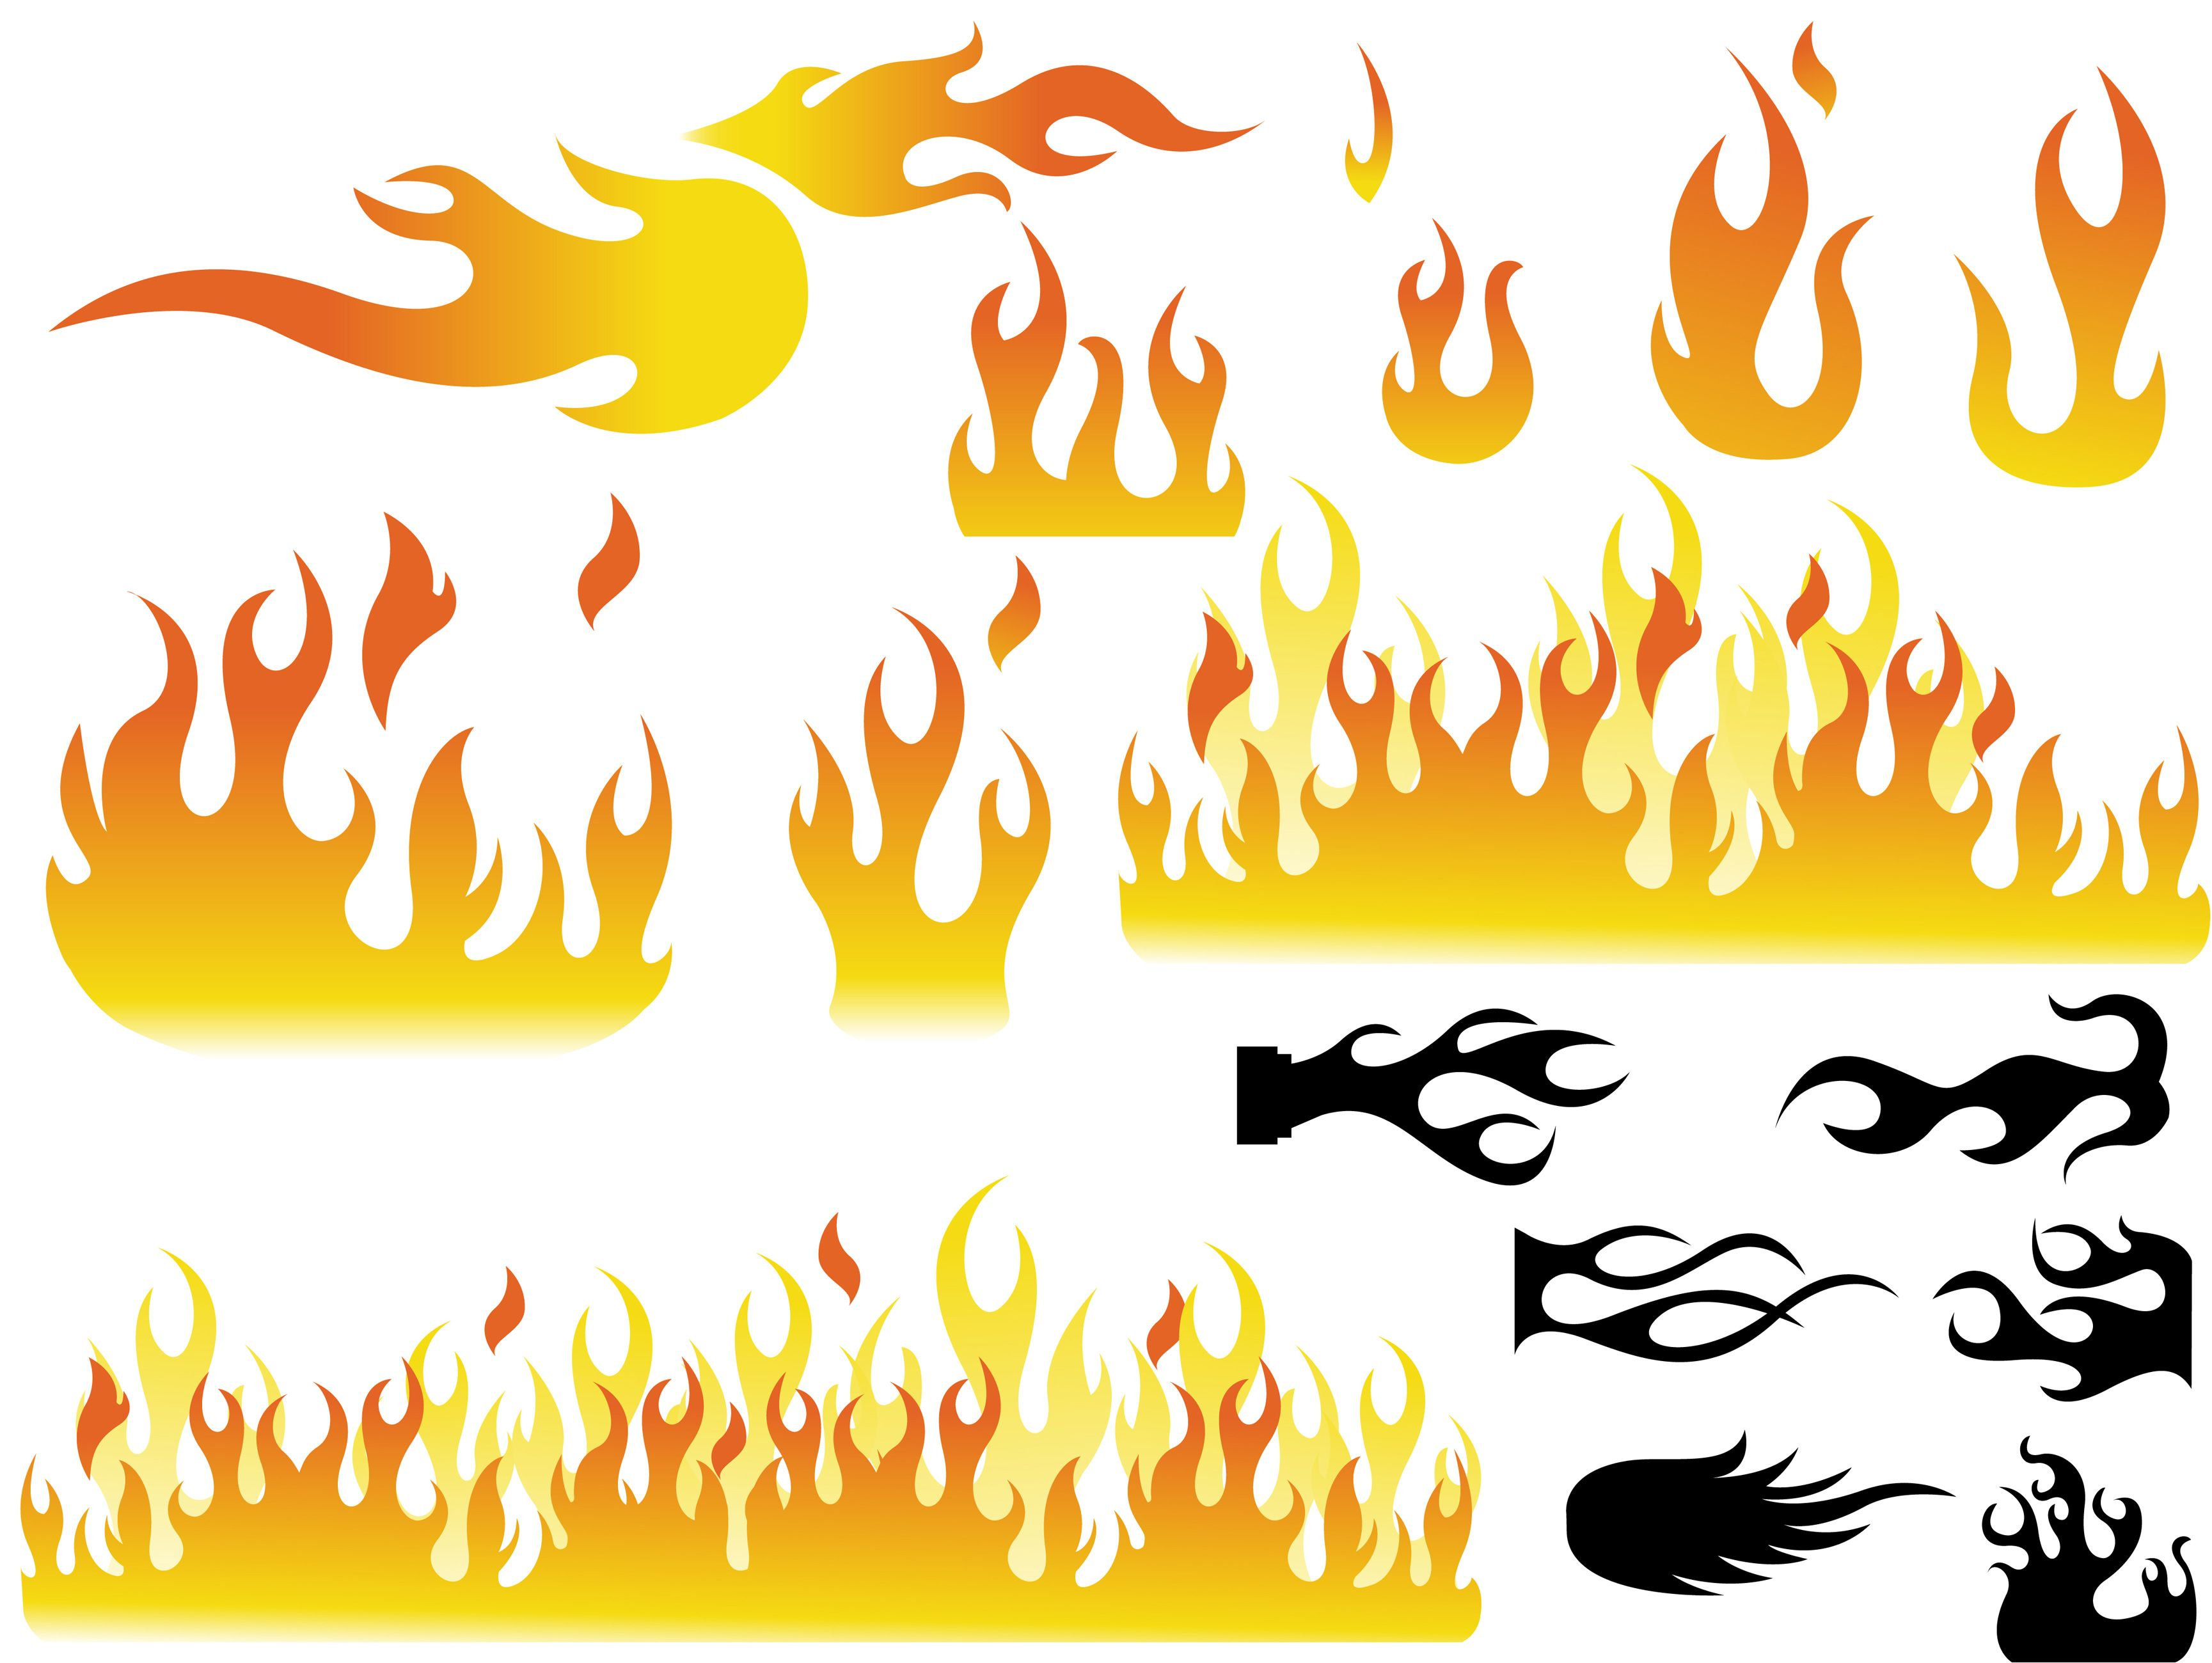 How To Draw Cartoon Fire Flames Clipart Panda Free Clipart Images Fire Drawing Drawing Flames Flame Art Record and instantly share video messages from your browser. how to draw cartoon fire flames